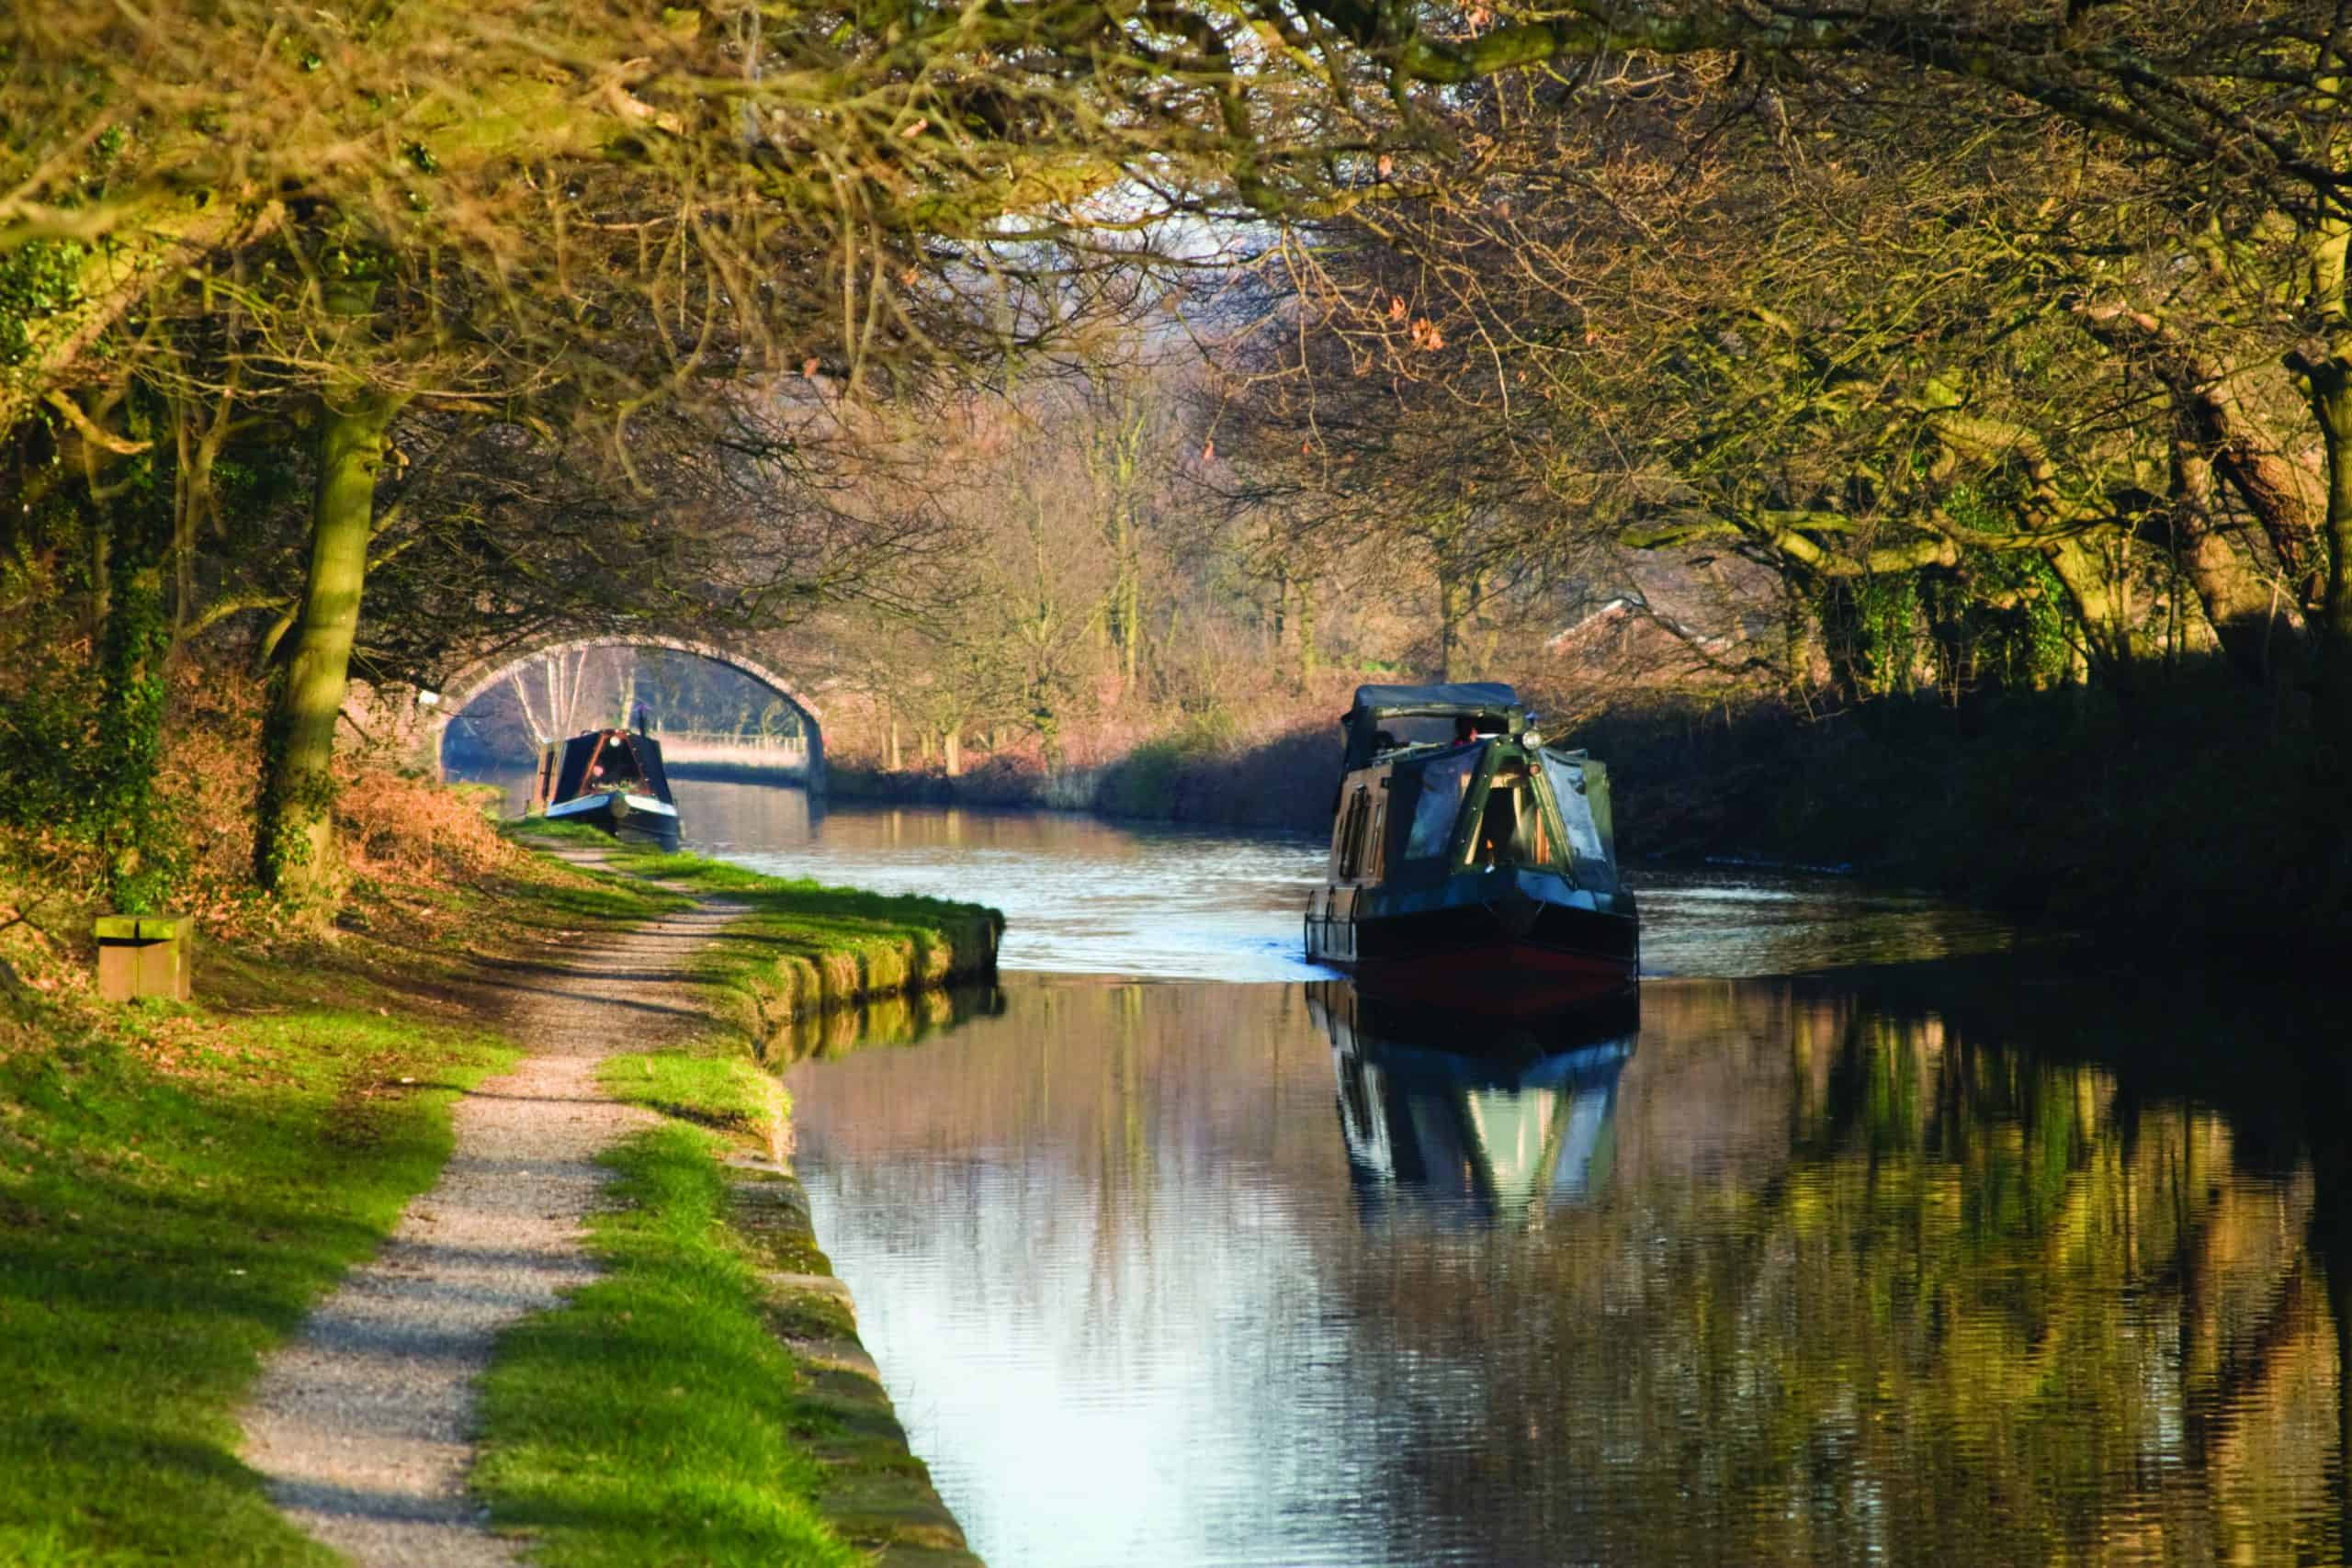 A canal with canal boats floating on it